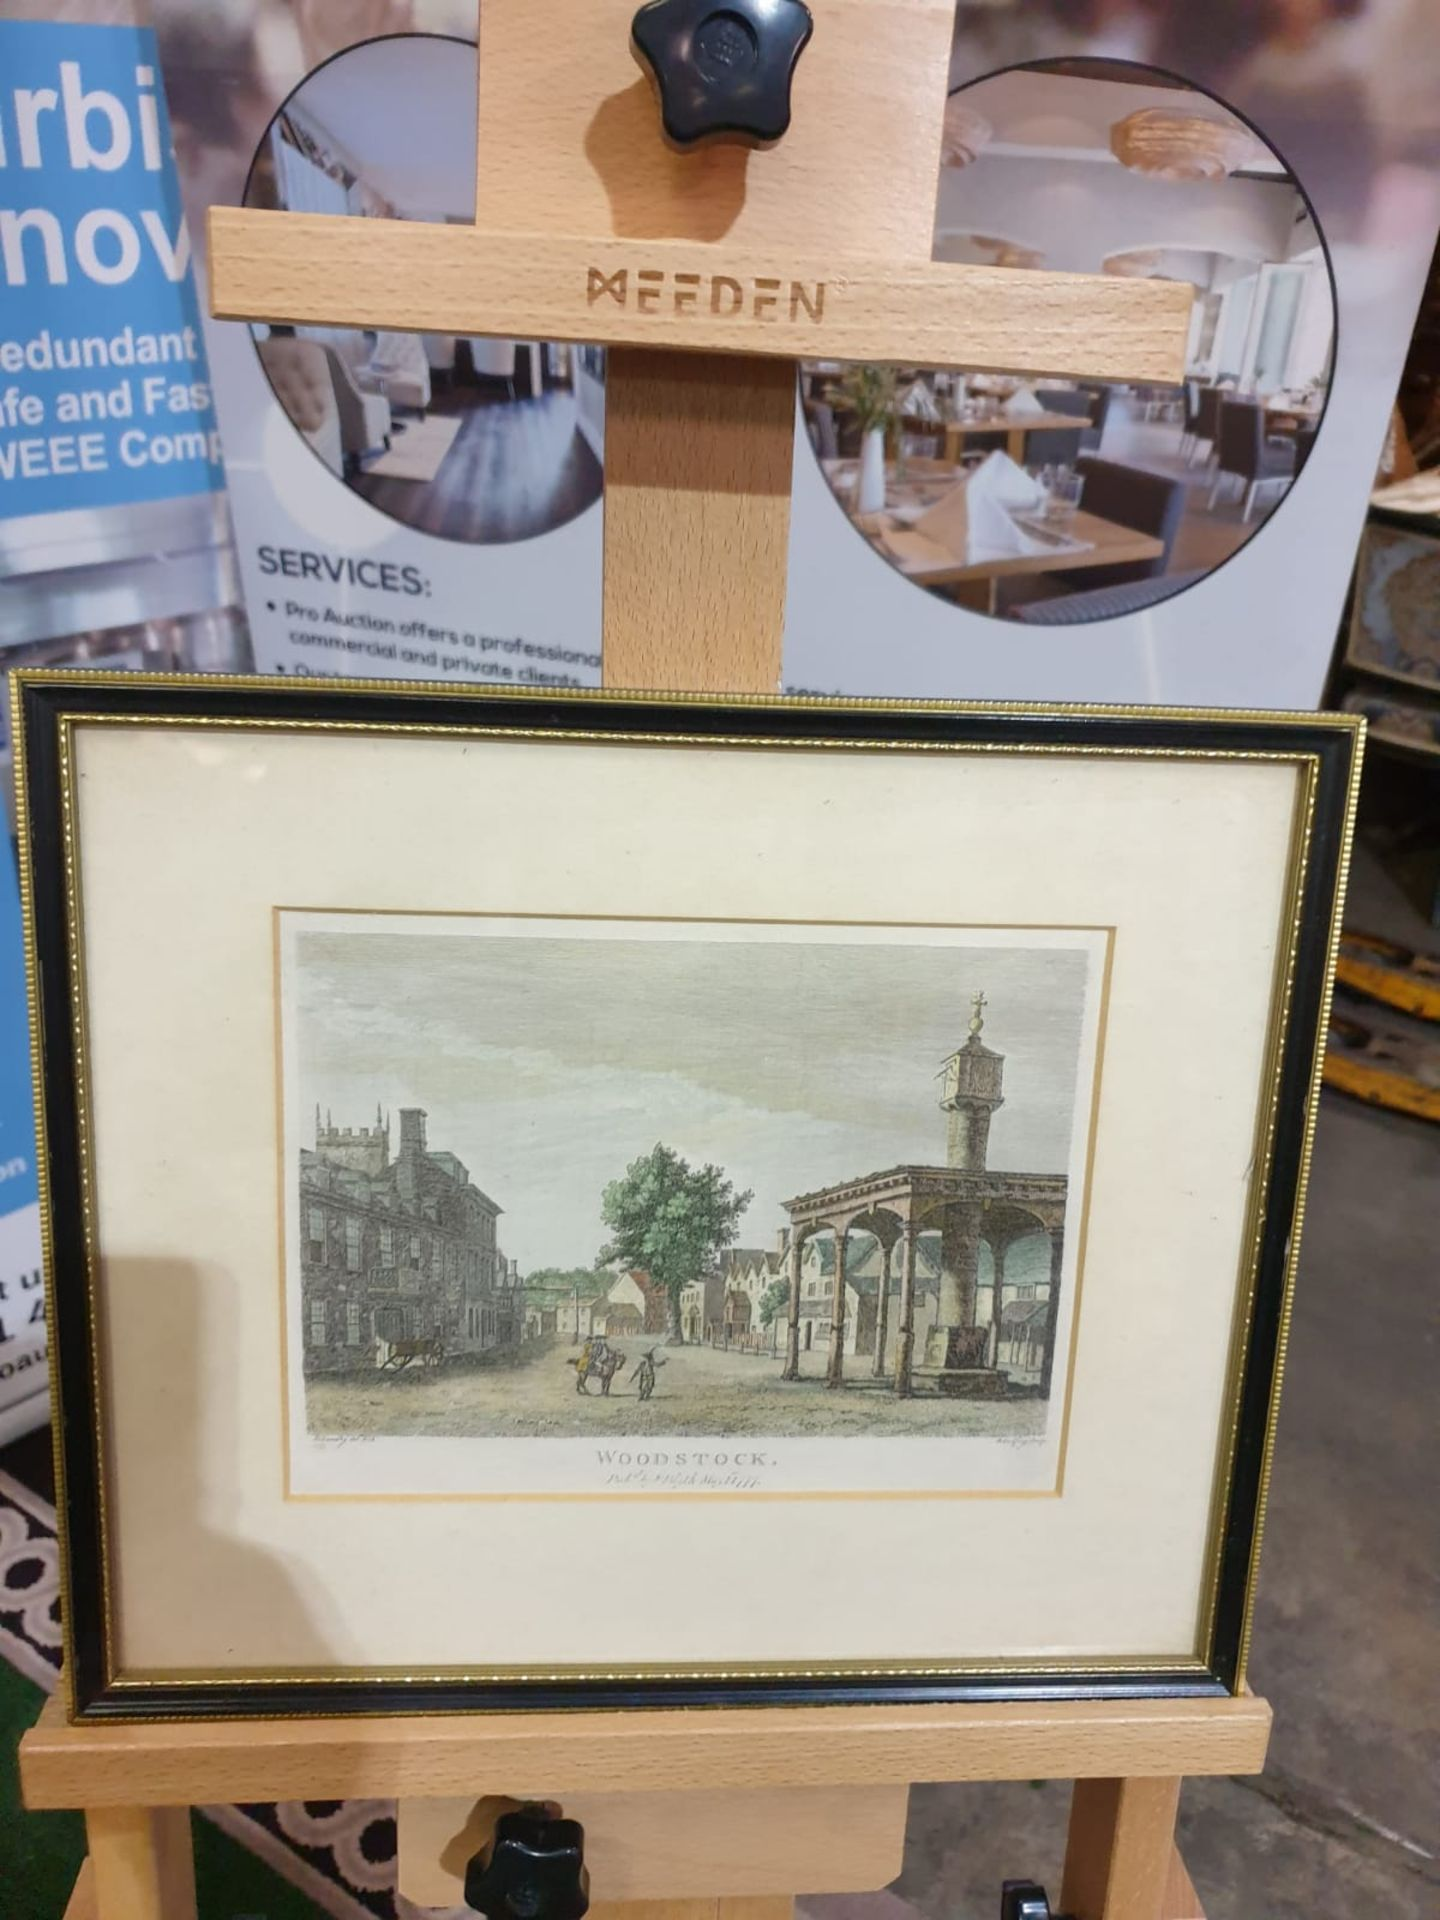 Framed Paul Sandby - Woodstock, hand-coloured etching by Godfrey, published by F. Blyth 1777 36 x - Image 3 of 3